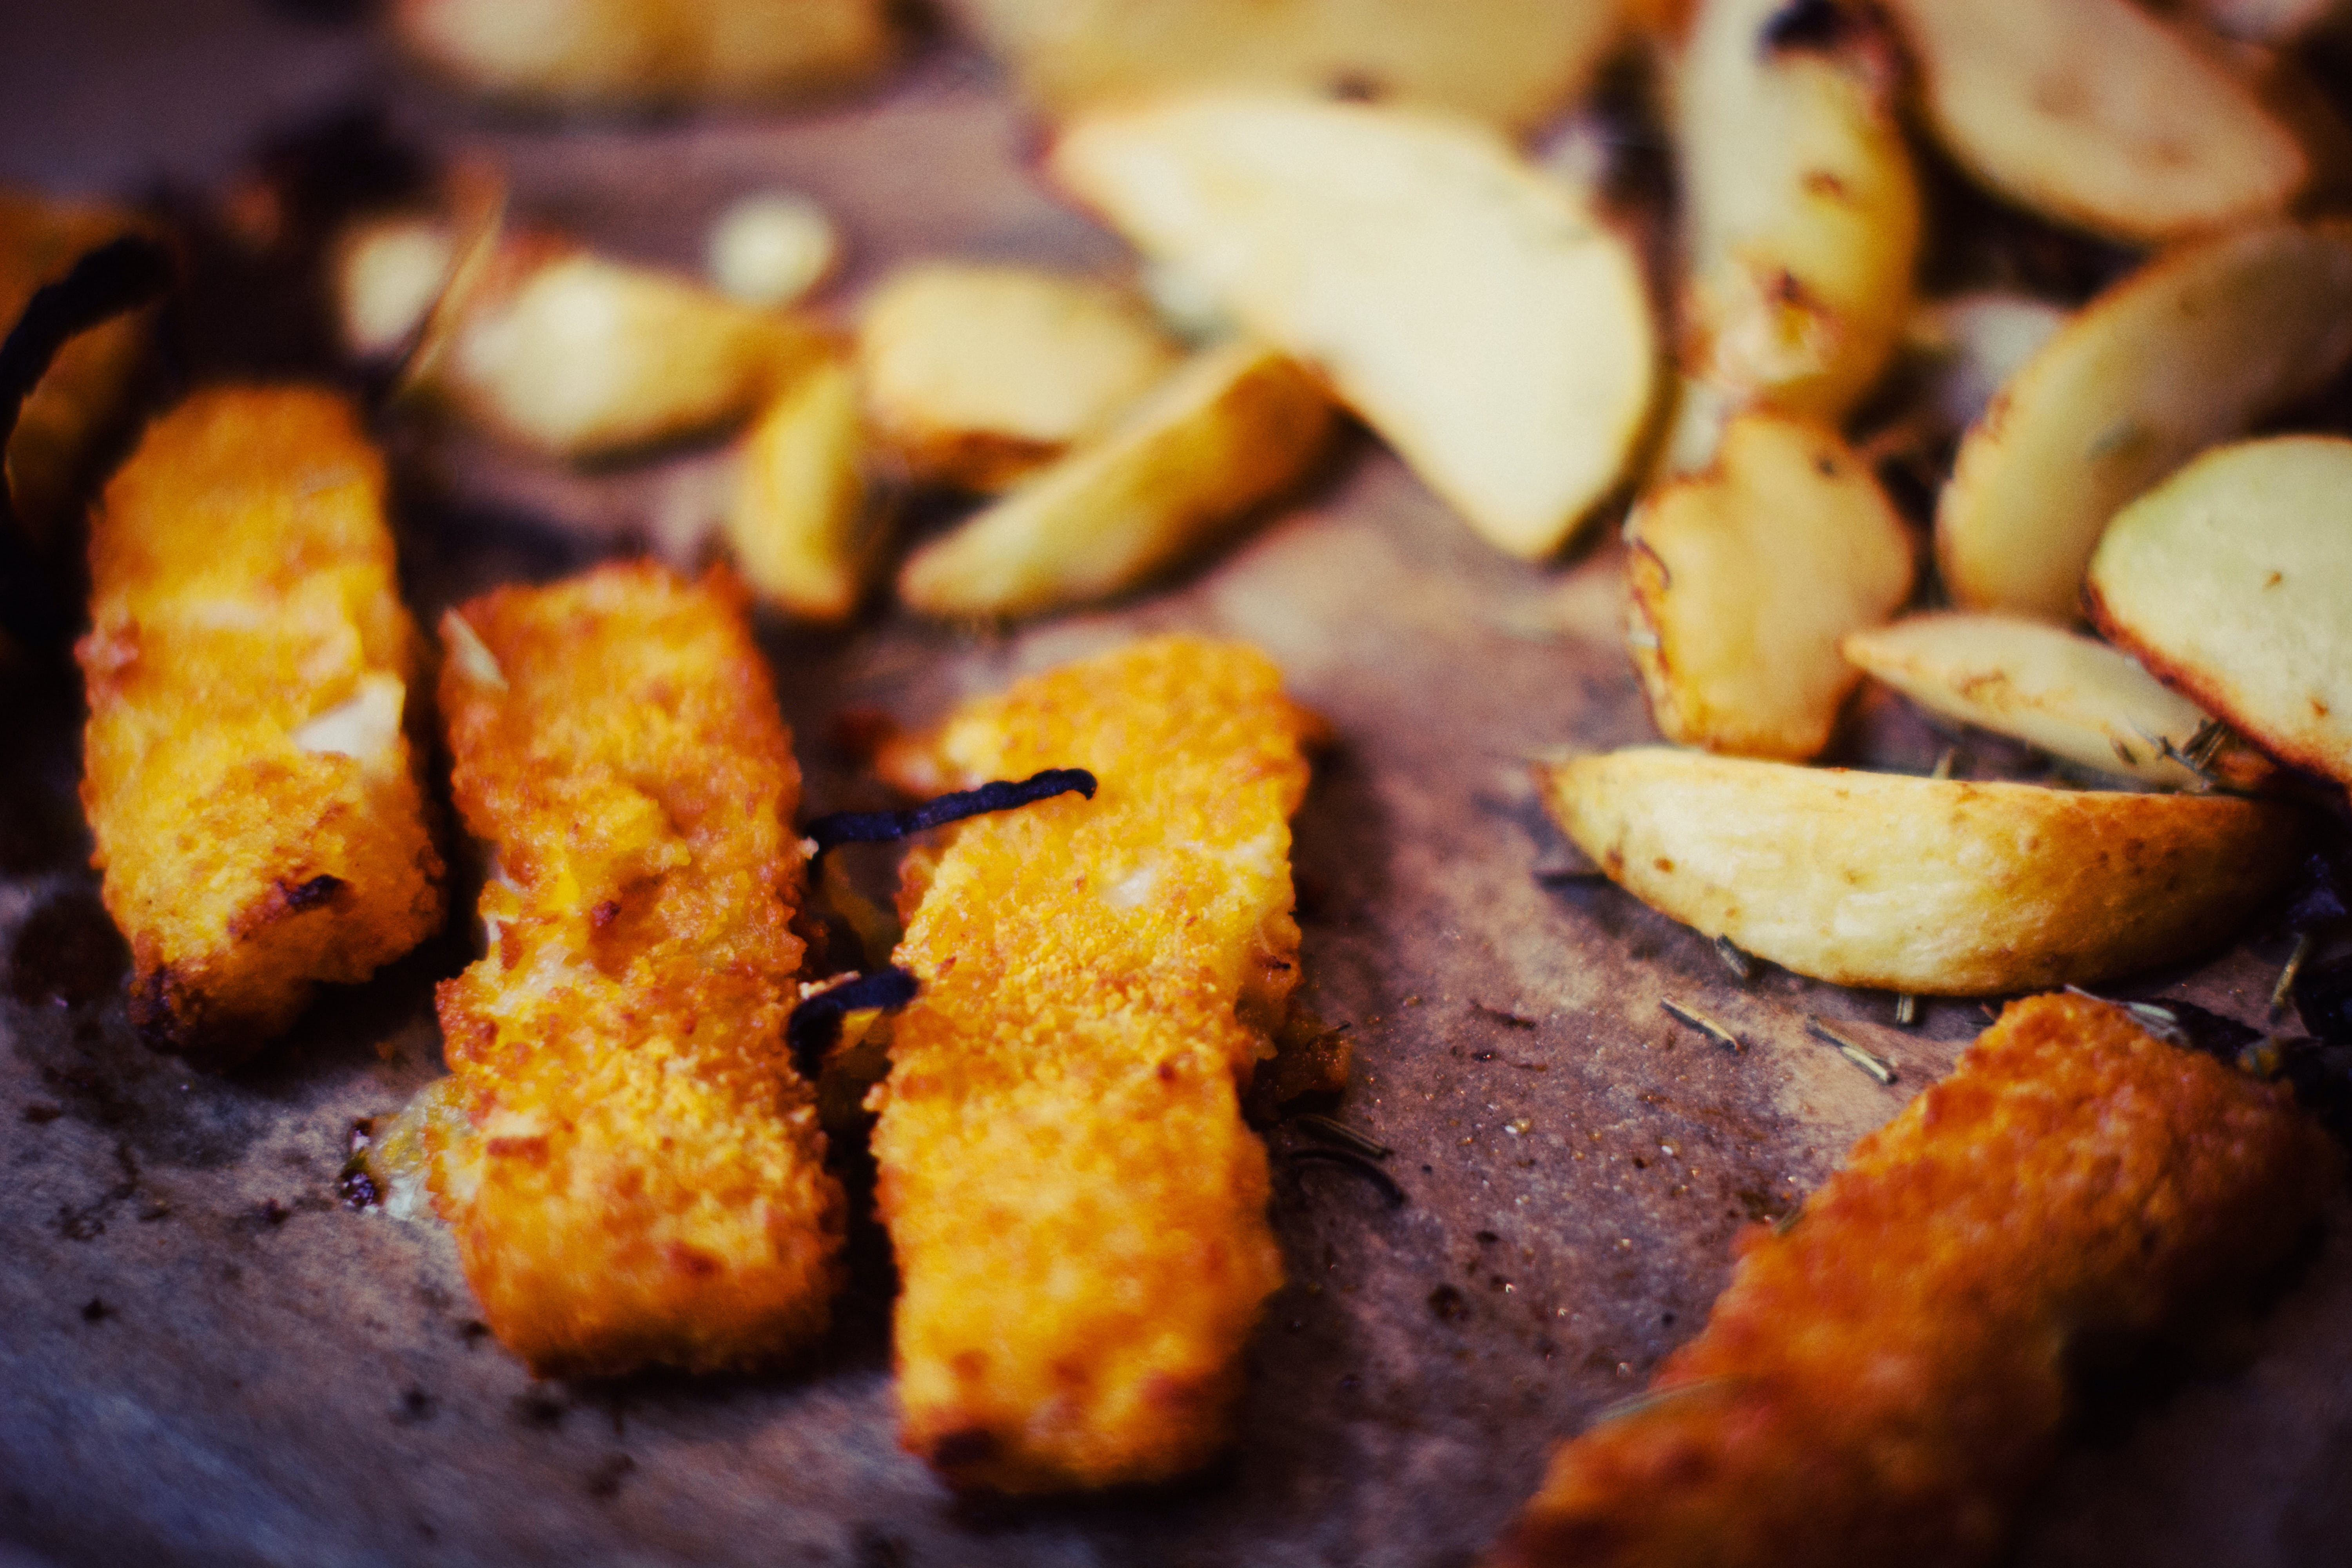 Free stock photo of food, dinner, quartiers, potato wedges